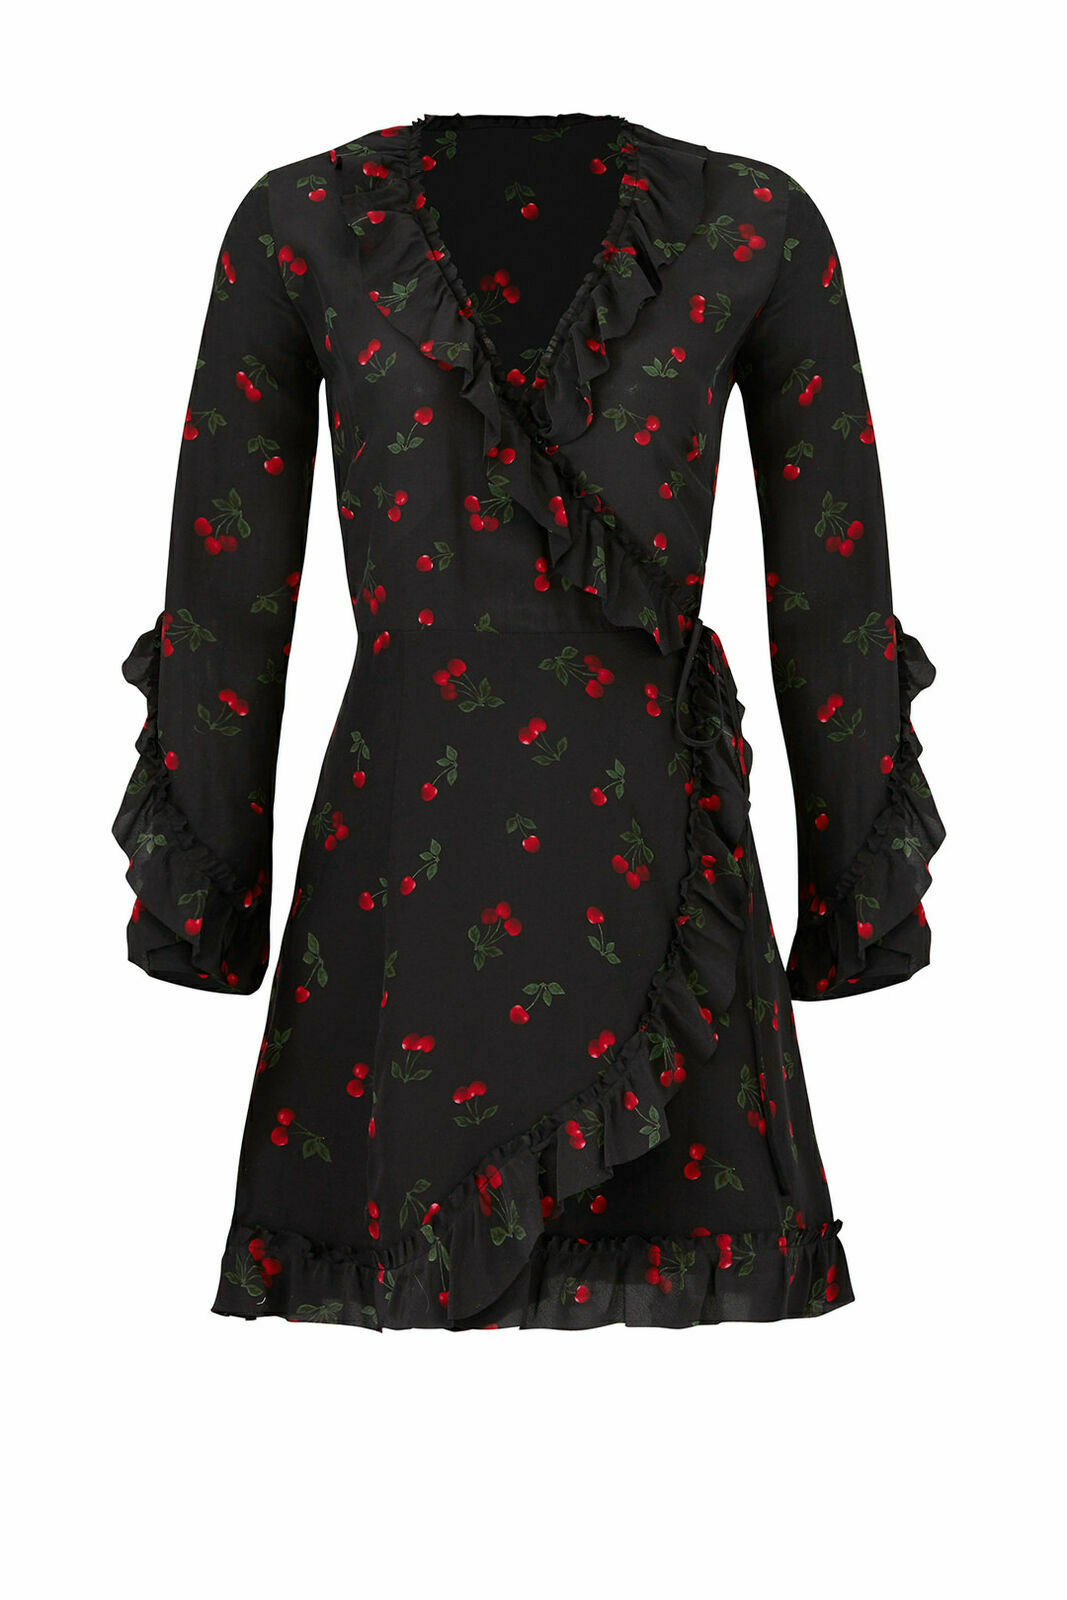 6245da615f3 The Kooples Black Women s Size 2 Ruffle Cherry Print Silk Wrap Dress  365-   674